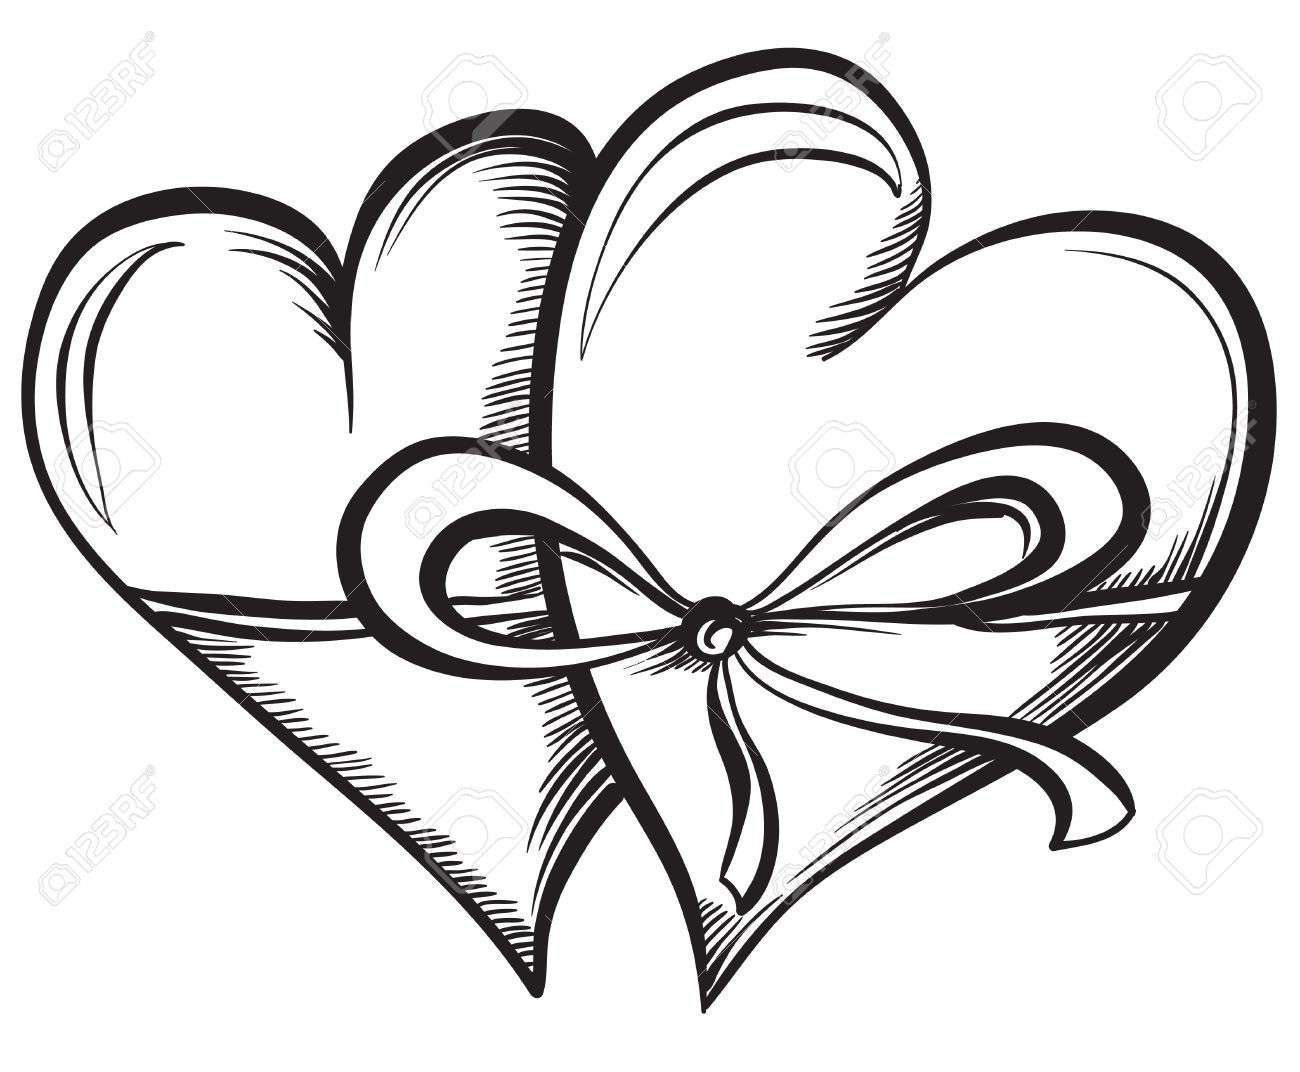 The Best Free Together Drawing Images Download From